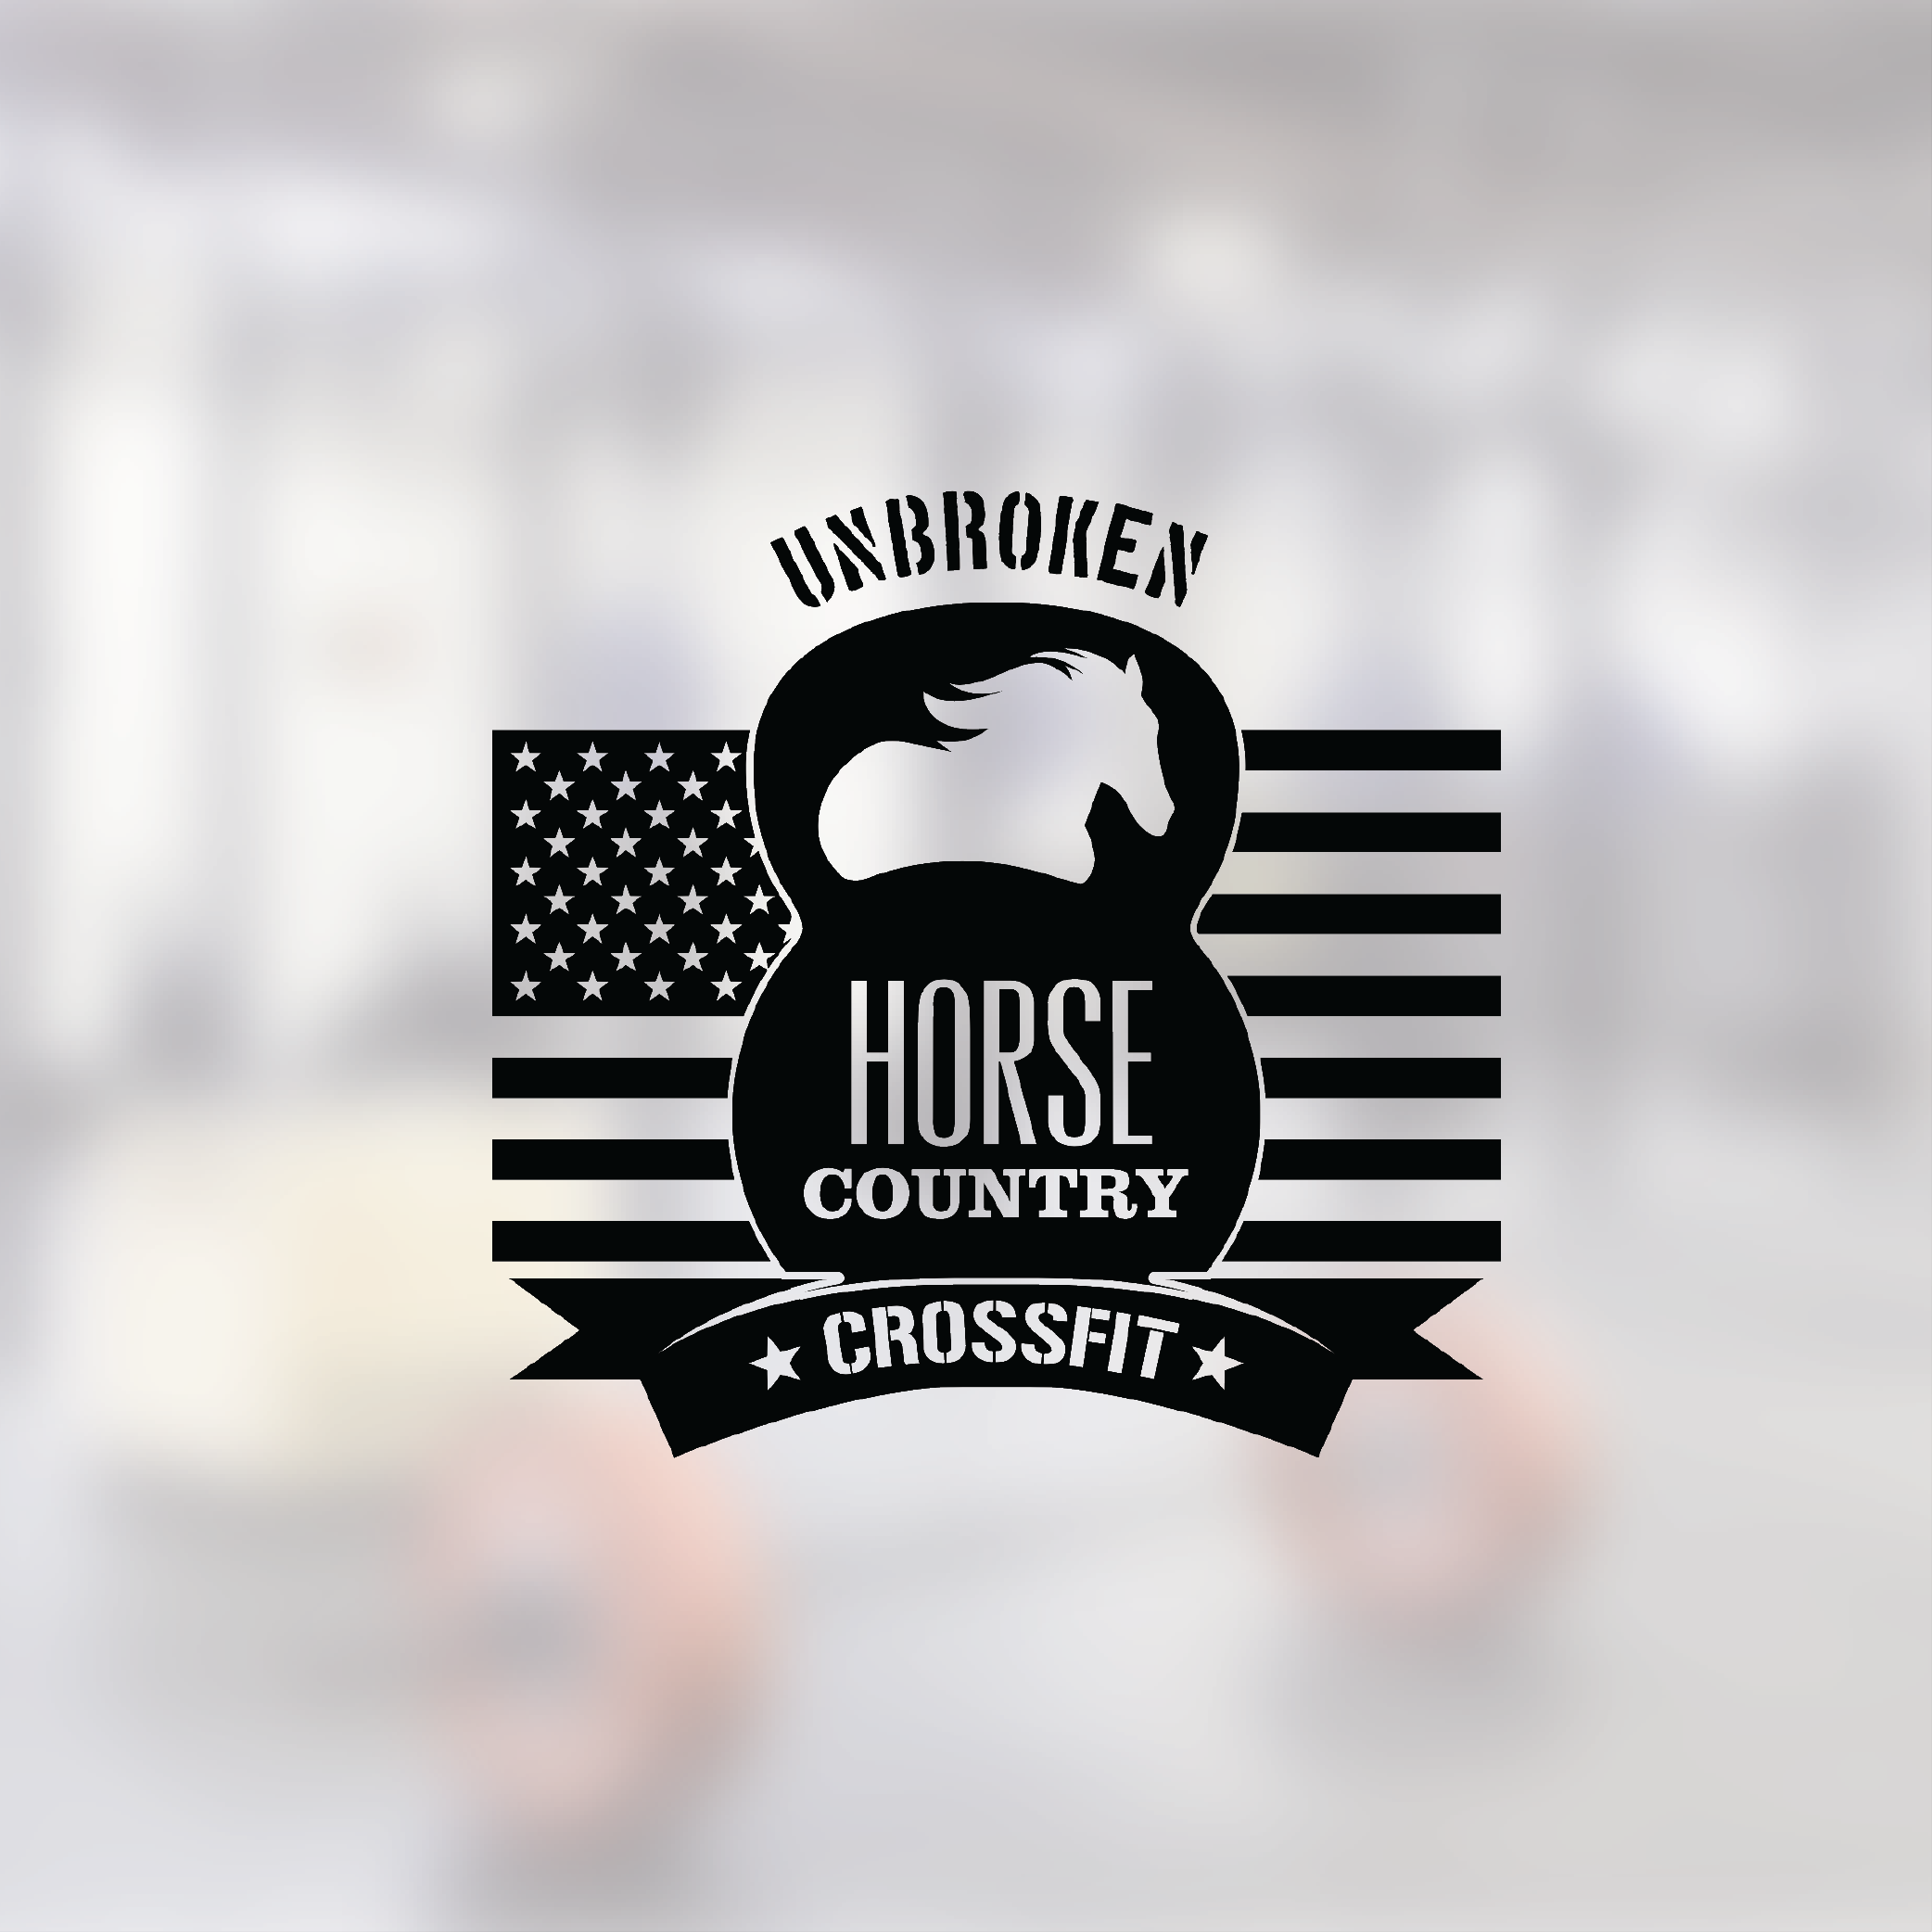 PP Gym Logo Icons_Unbroken Horse Country.png